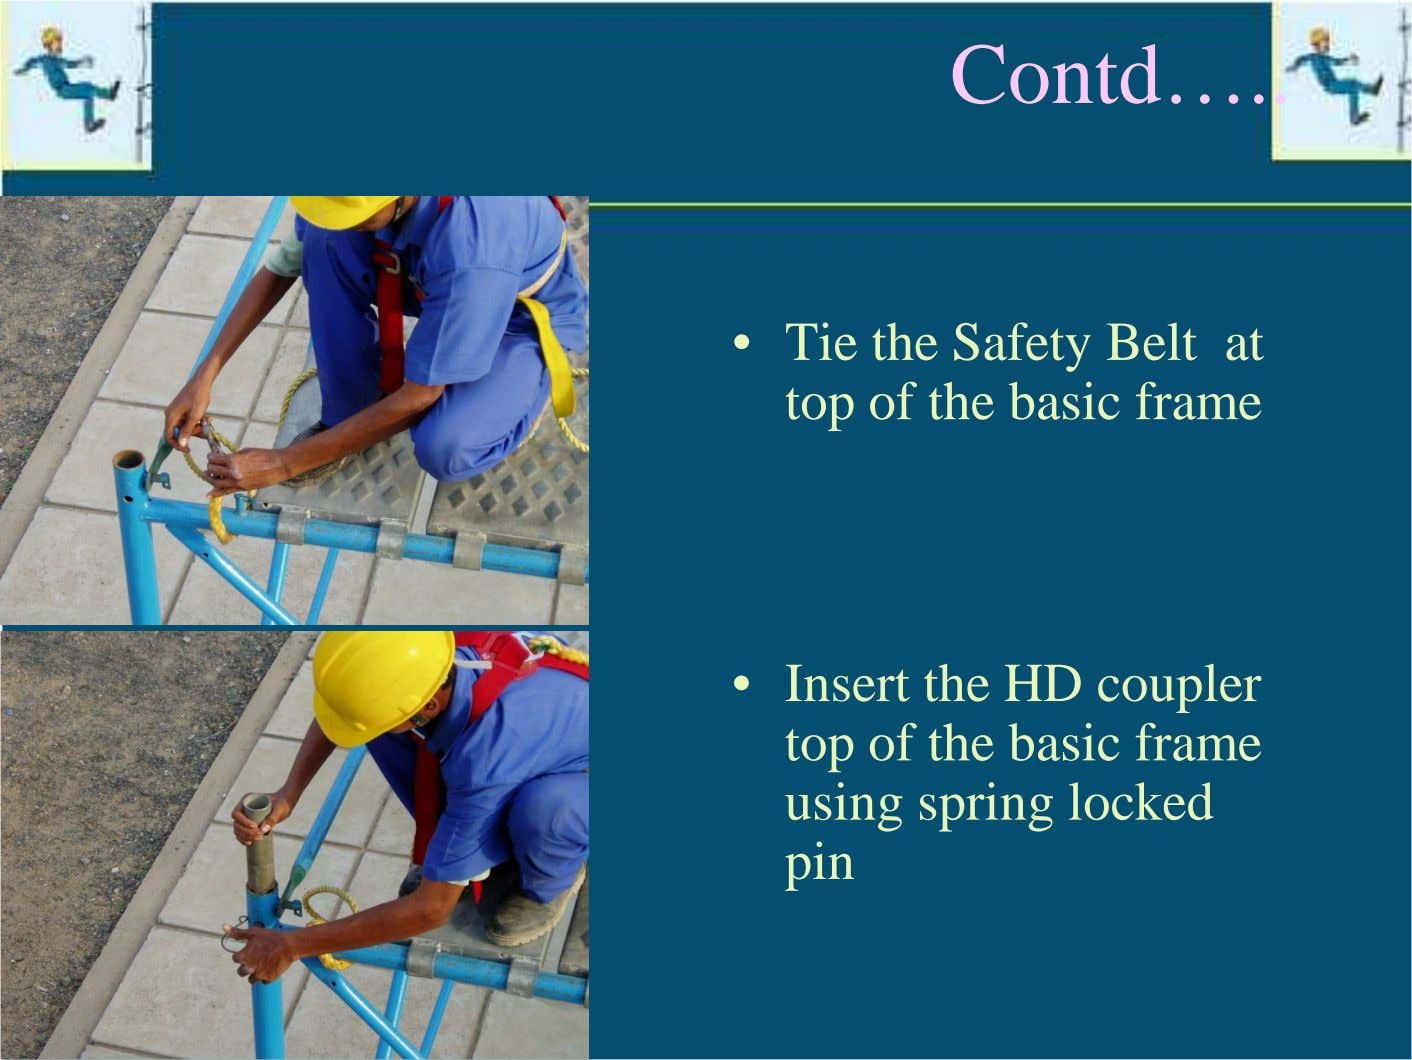 Contd… • Tie the Safety Belt at top of the basic frame • Insert the